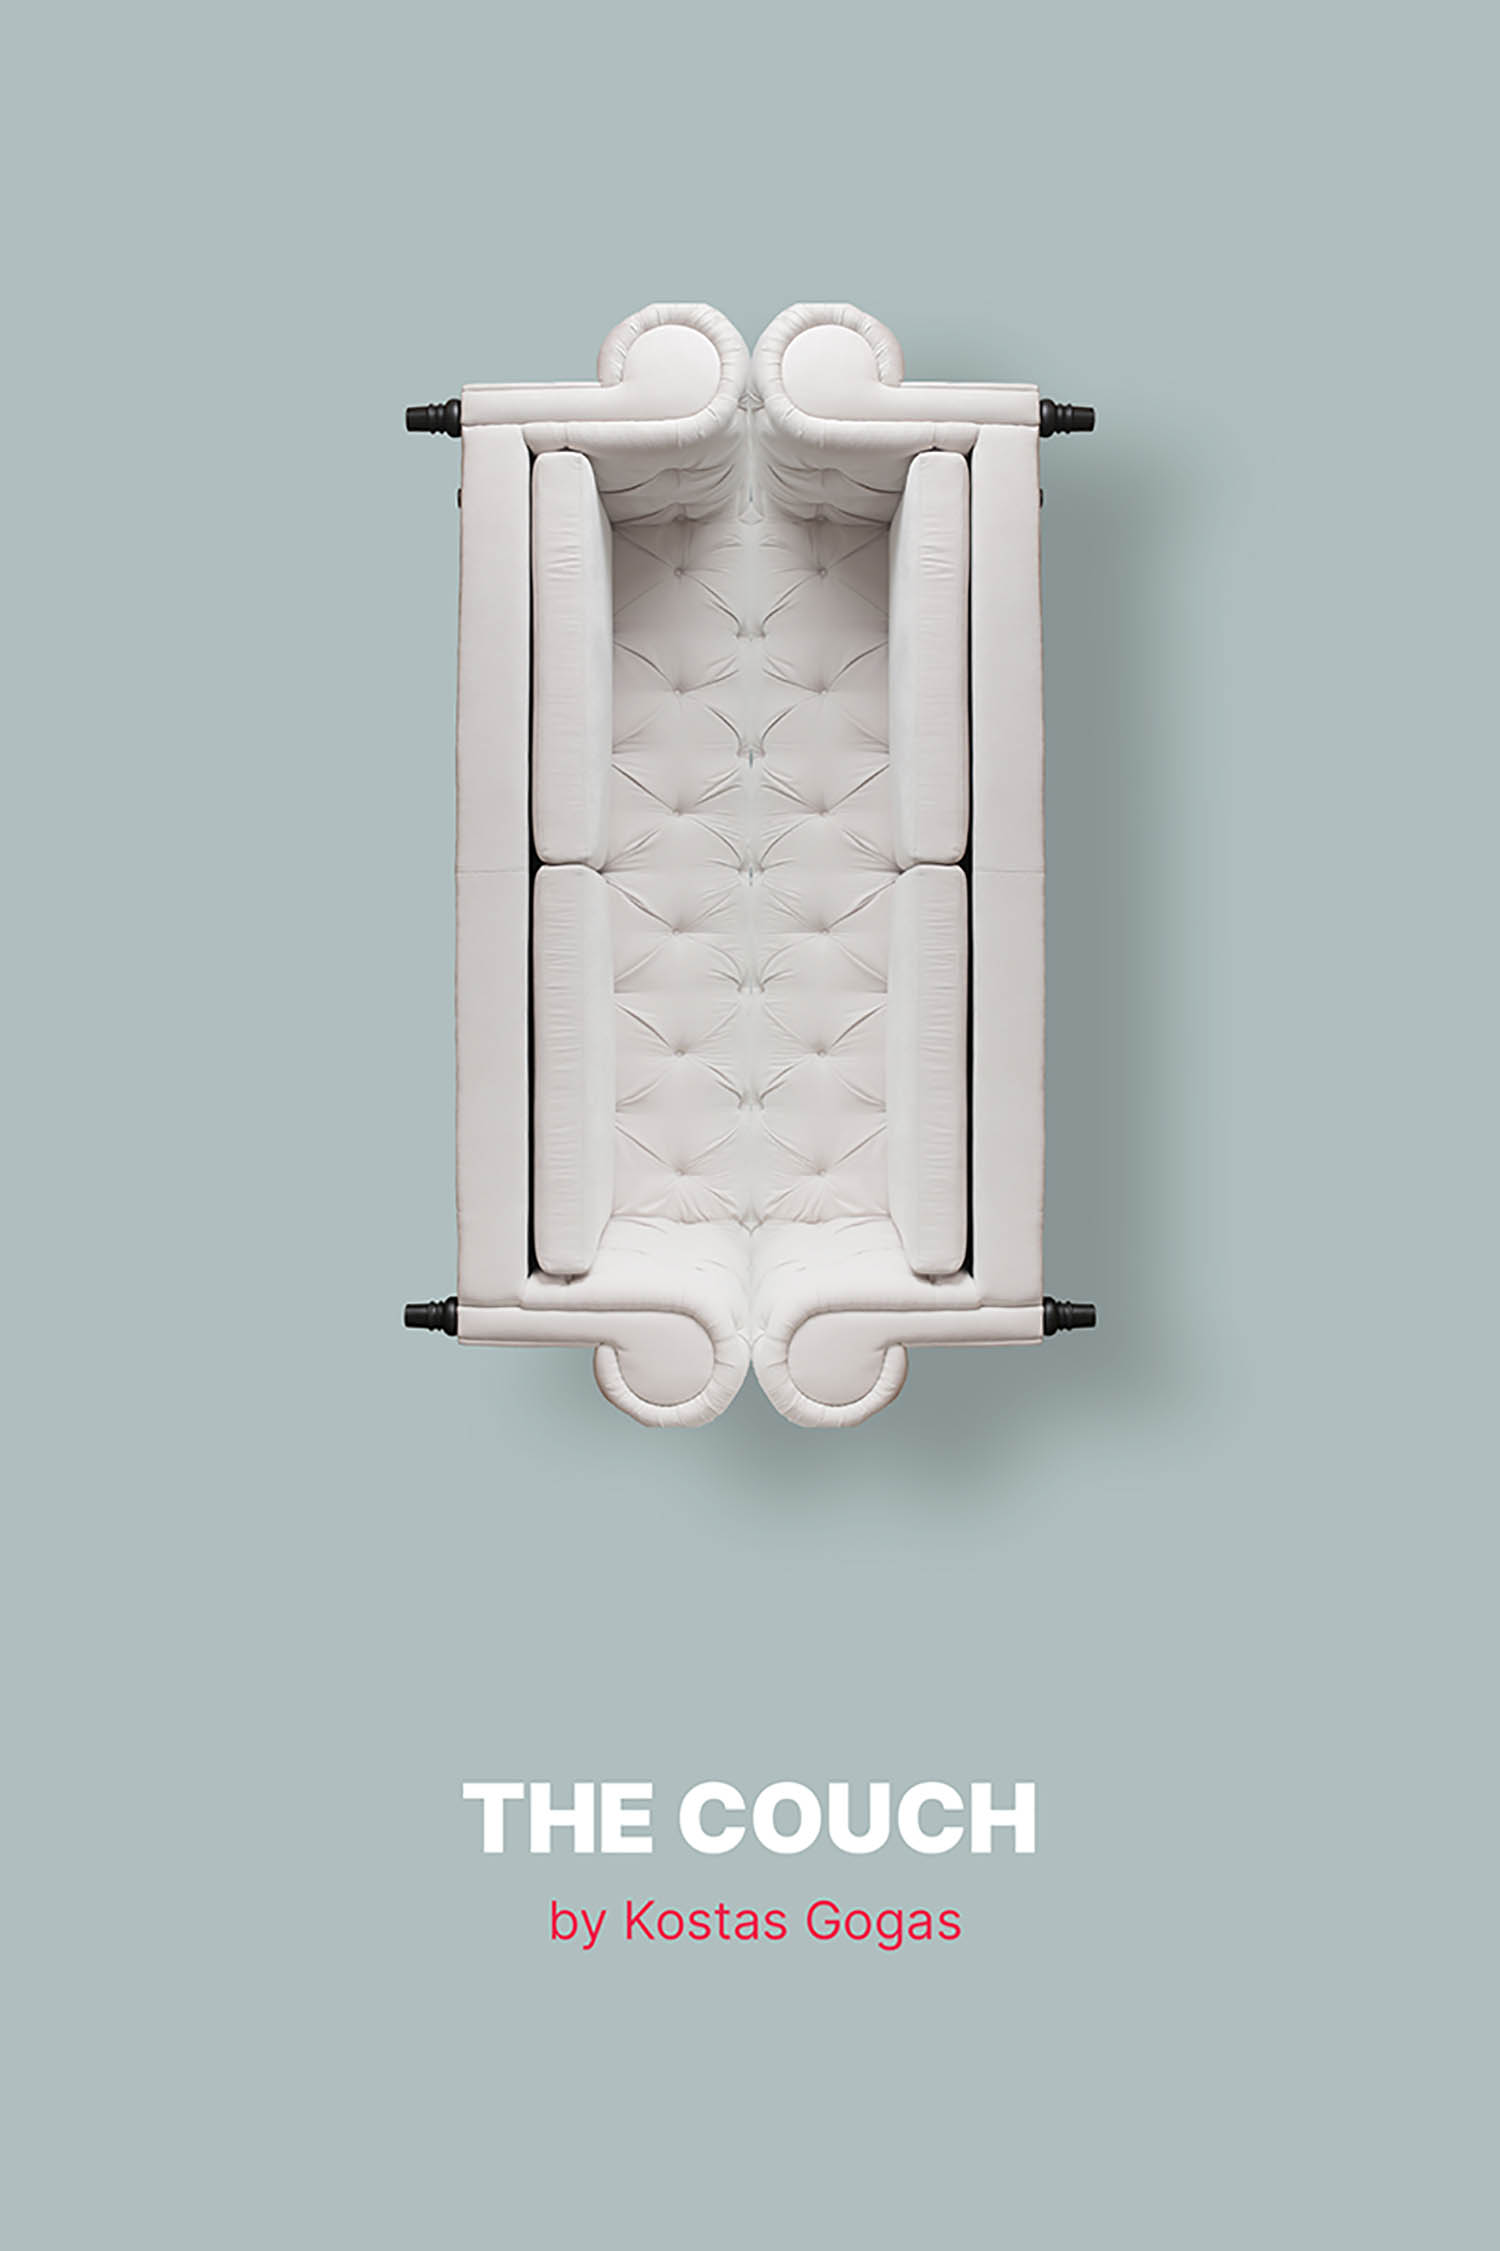 Book cover of 'The Couch' by Kostas Gogas